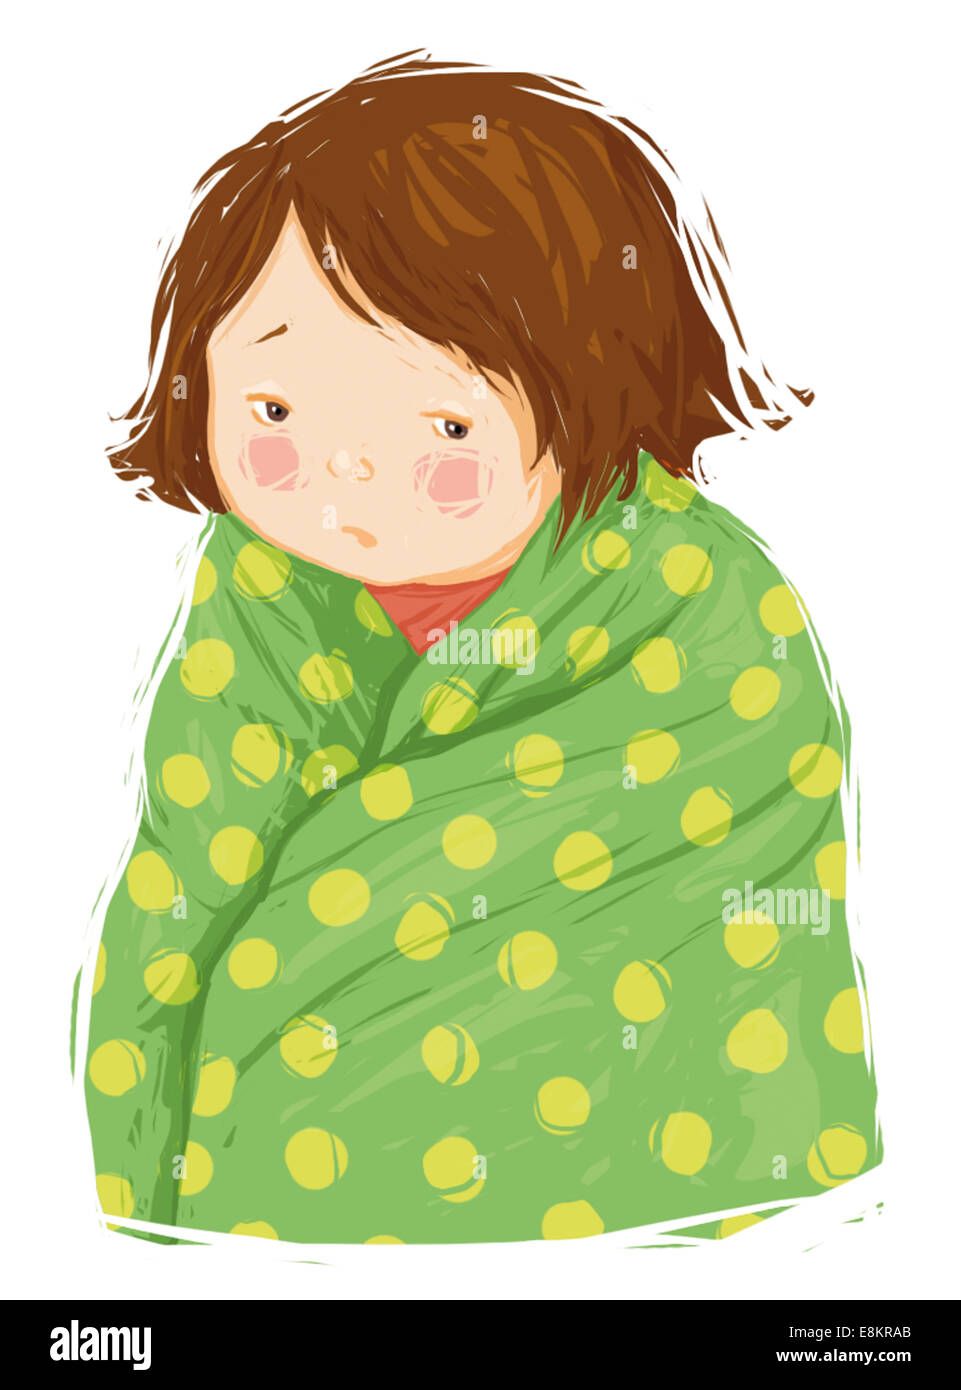 A young girl with a temperature. - Stock Image